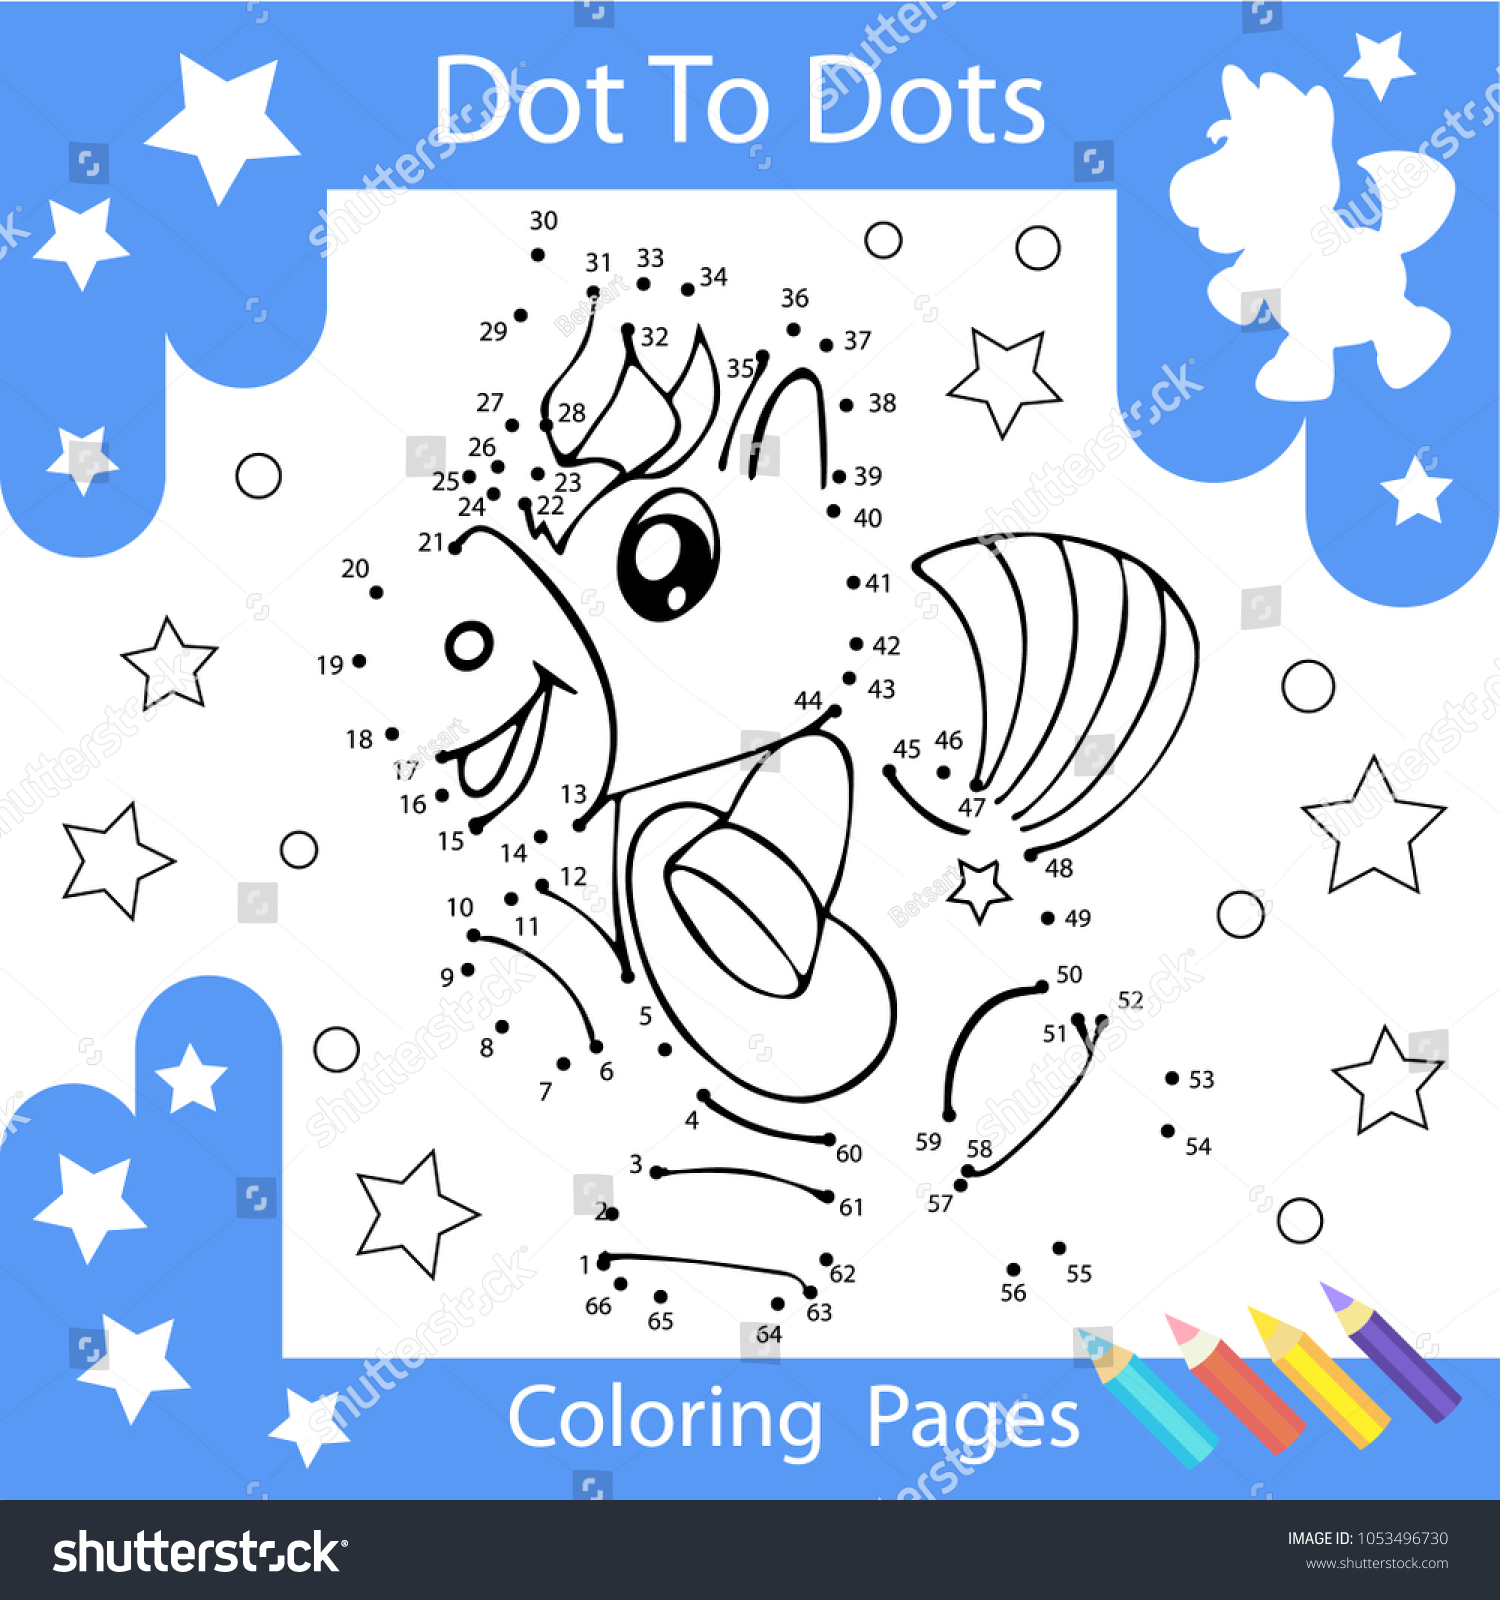 Worksheets Dot To Dots With Drawn The Unicorn Children Funny Riddle Coloring Page